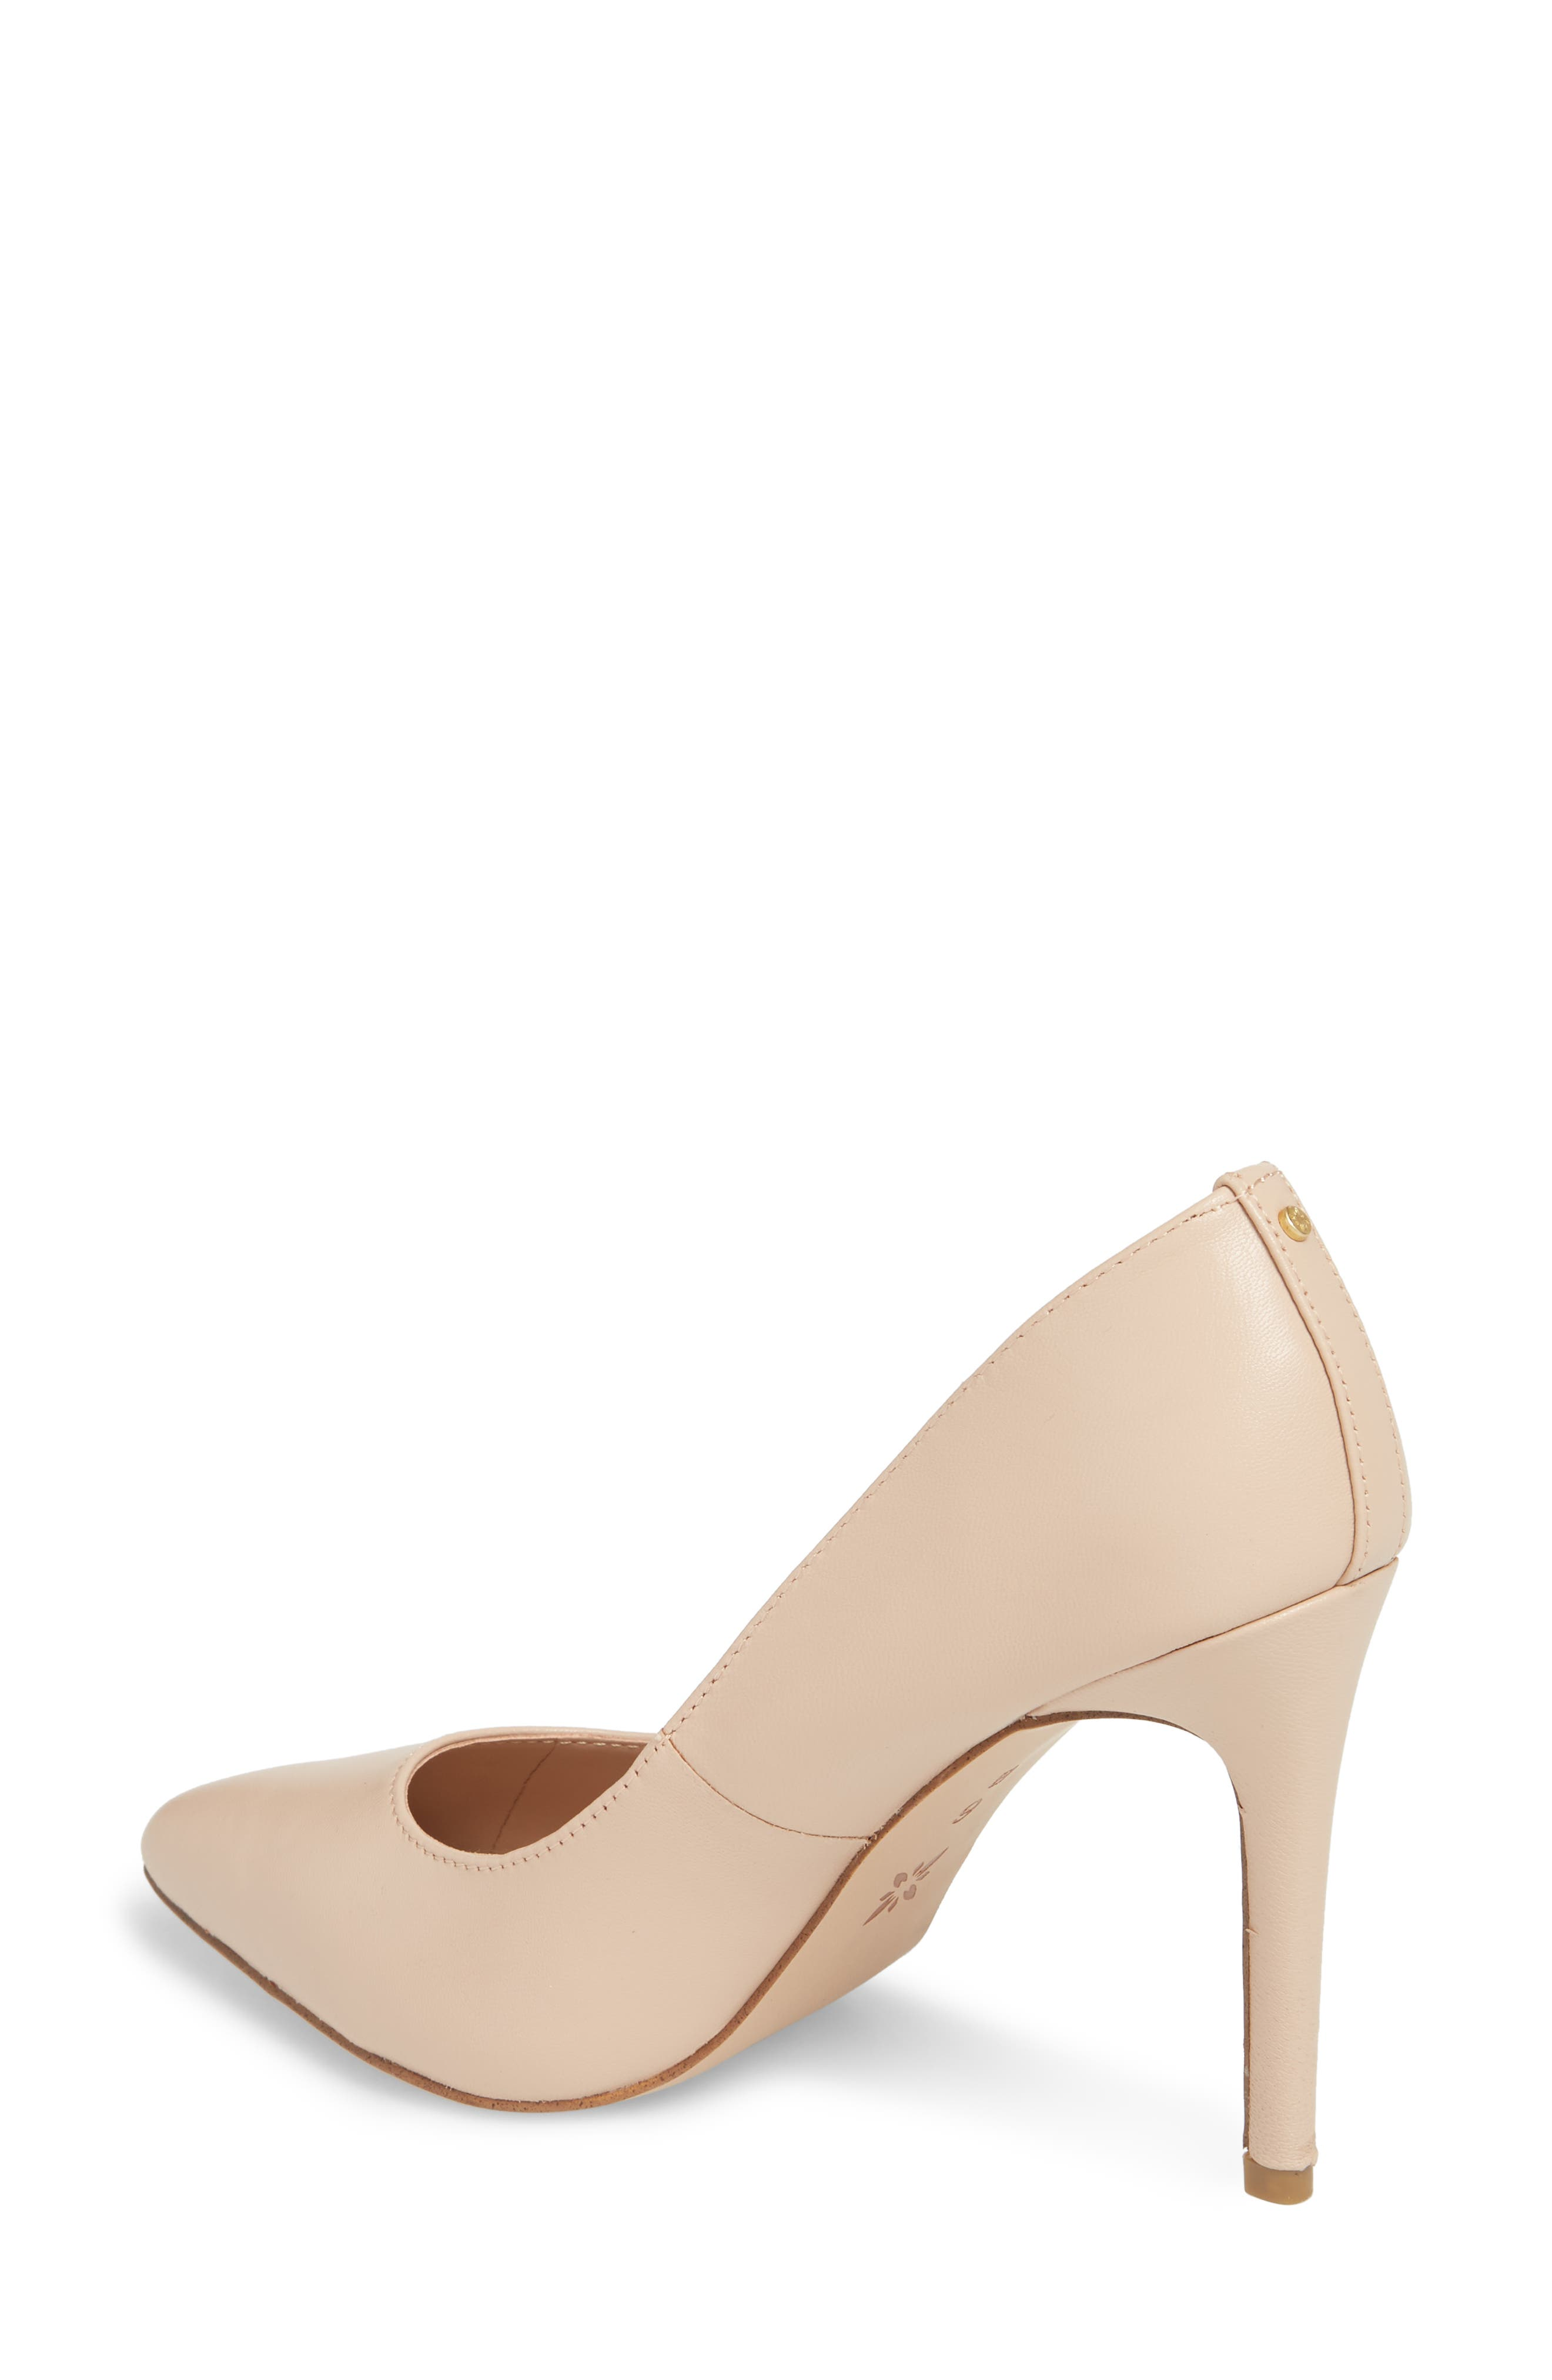 BCBG,                             Heidi Pump,                             Alternate thumbnail 2, color,                             SHELL LEATHER